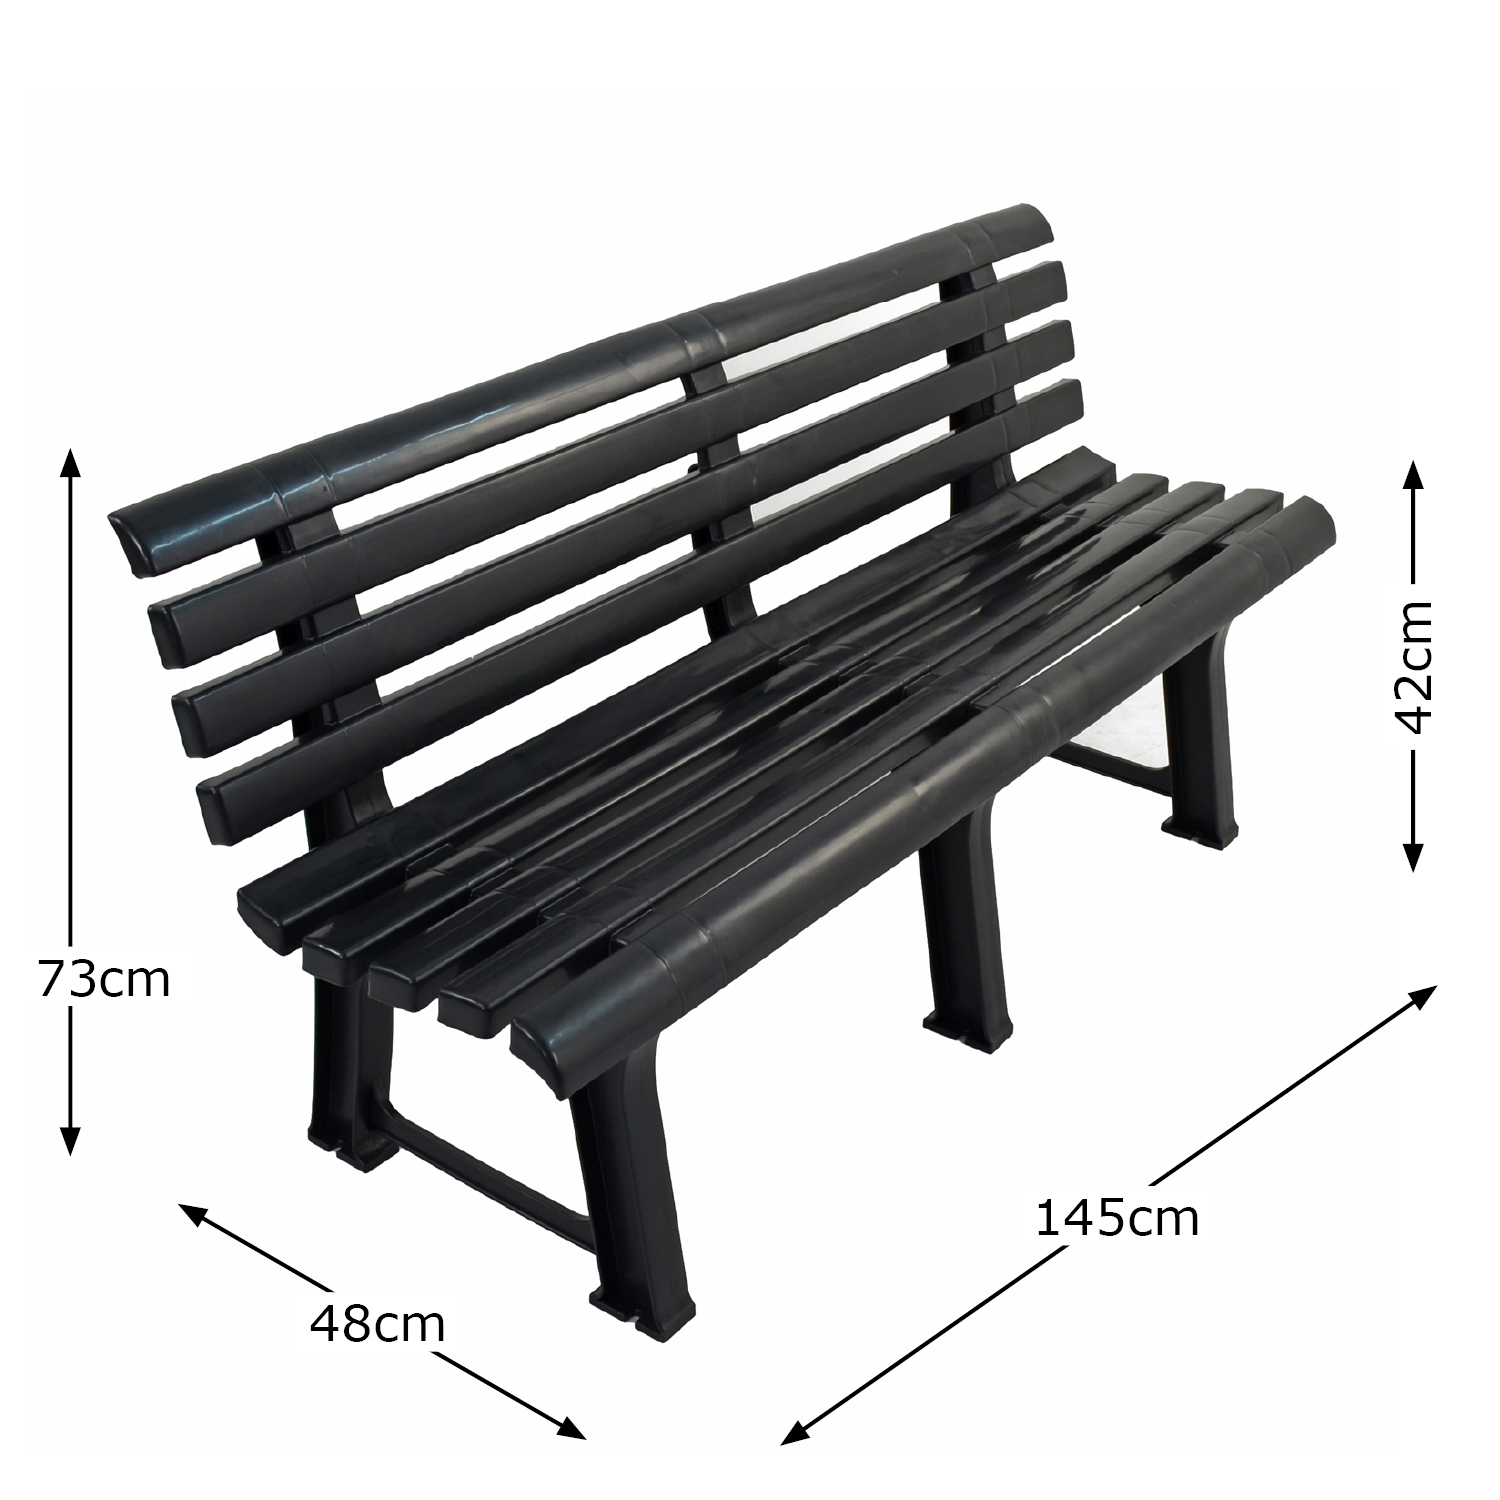 BRINDISI BENCH ANTHRACITE DIMENSION MS1